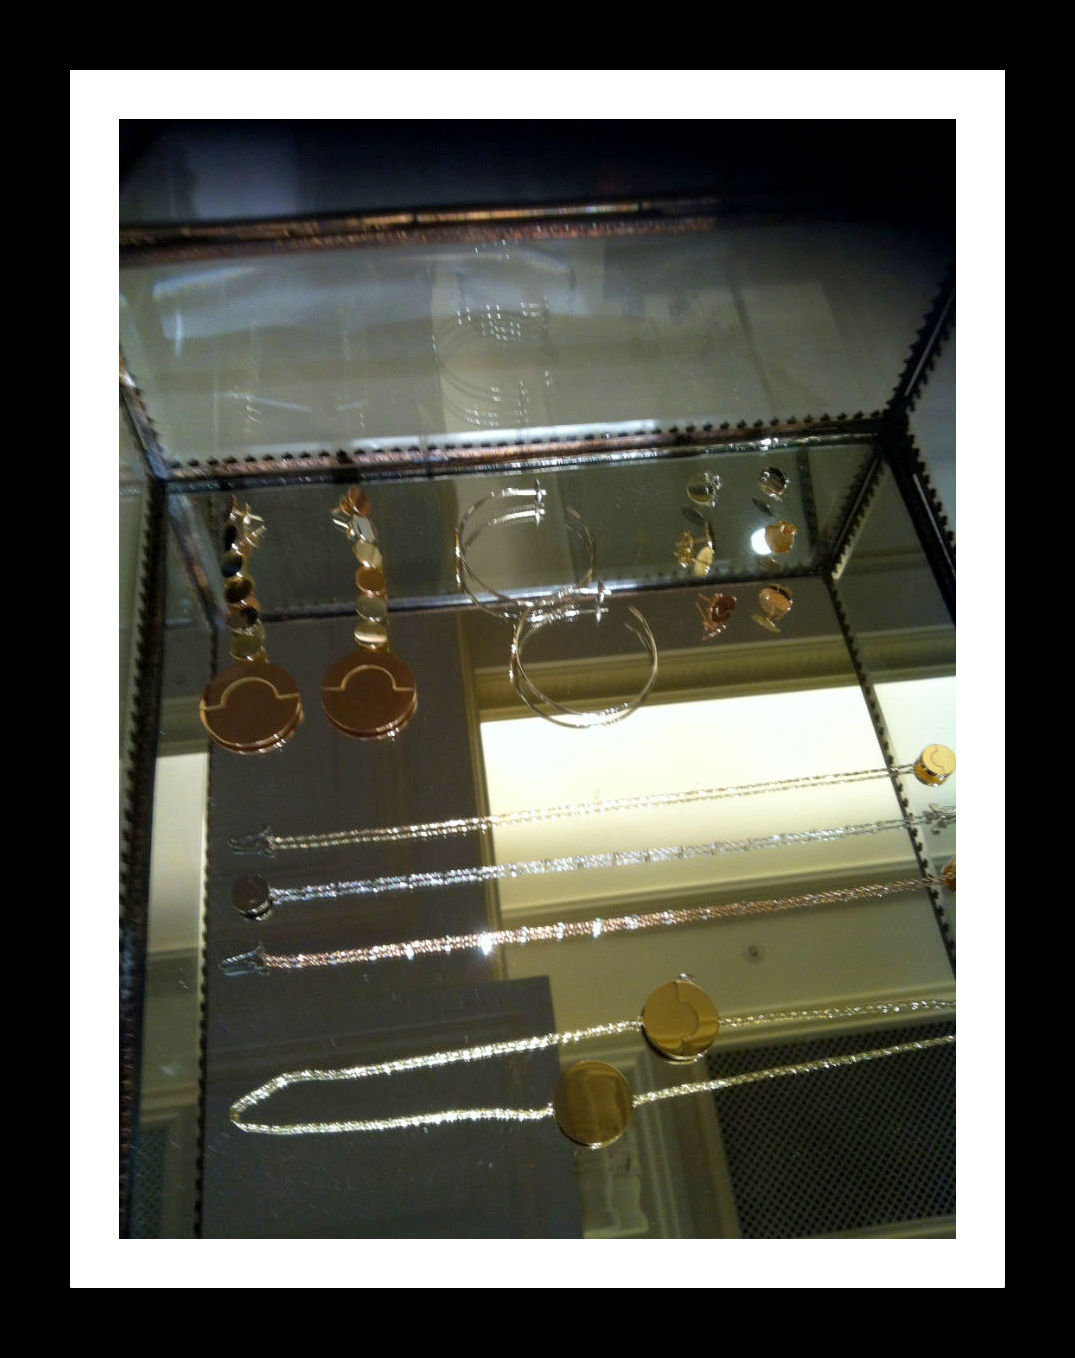 Lanivincoli necklaces 1